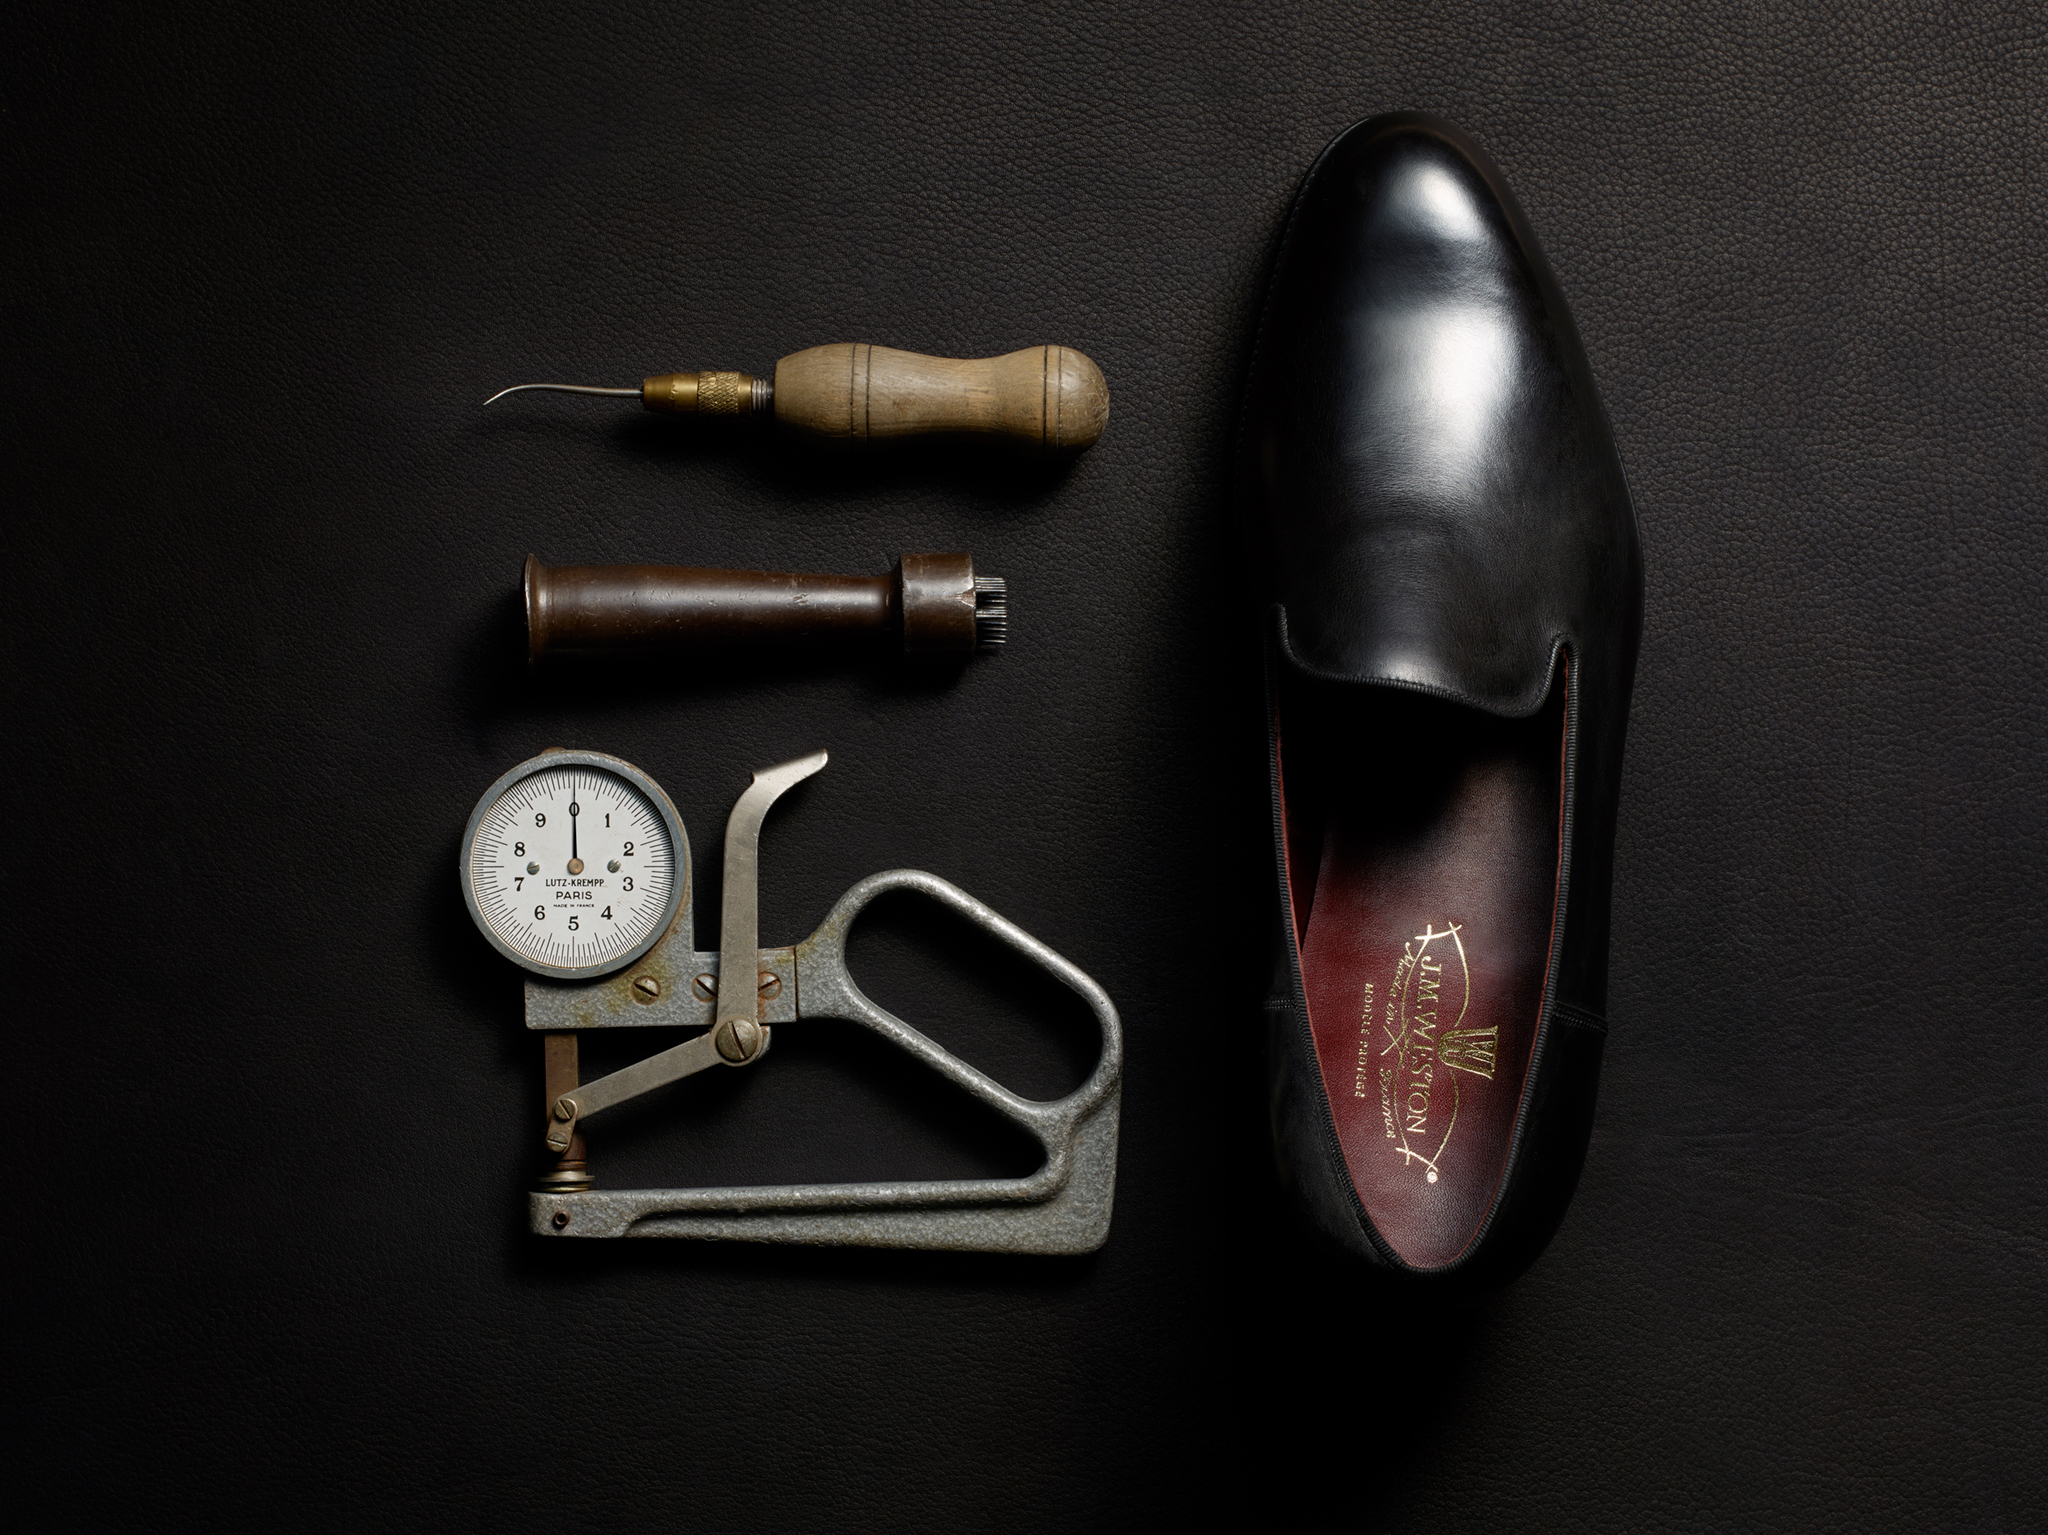 J.M. WESTON ULTRA. Mocassin Manufacture française Made in France Soulier Luxe Outils Savoir-Faire